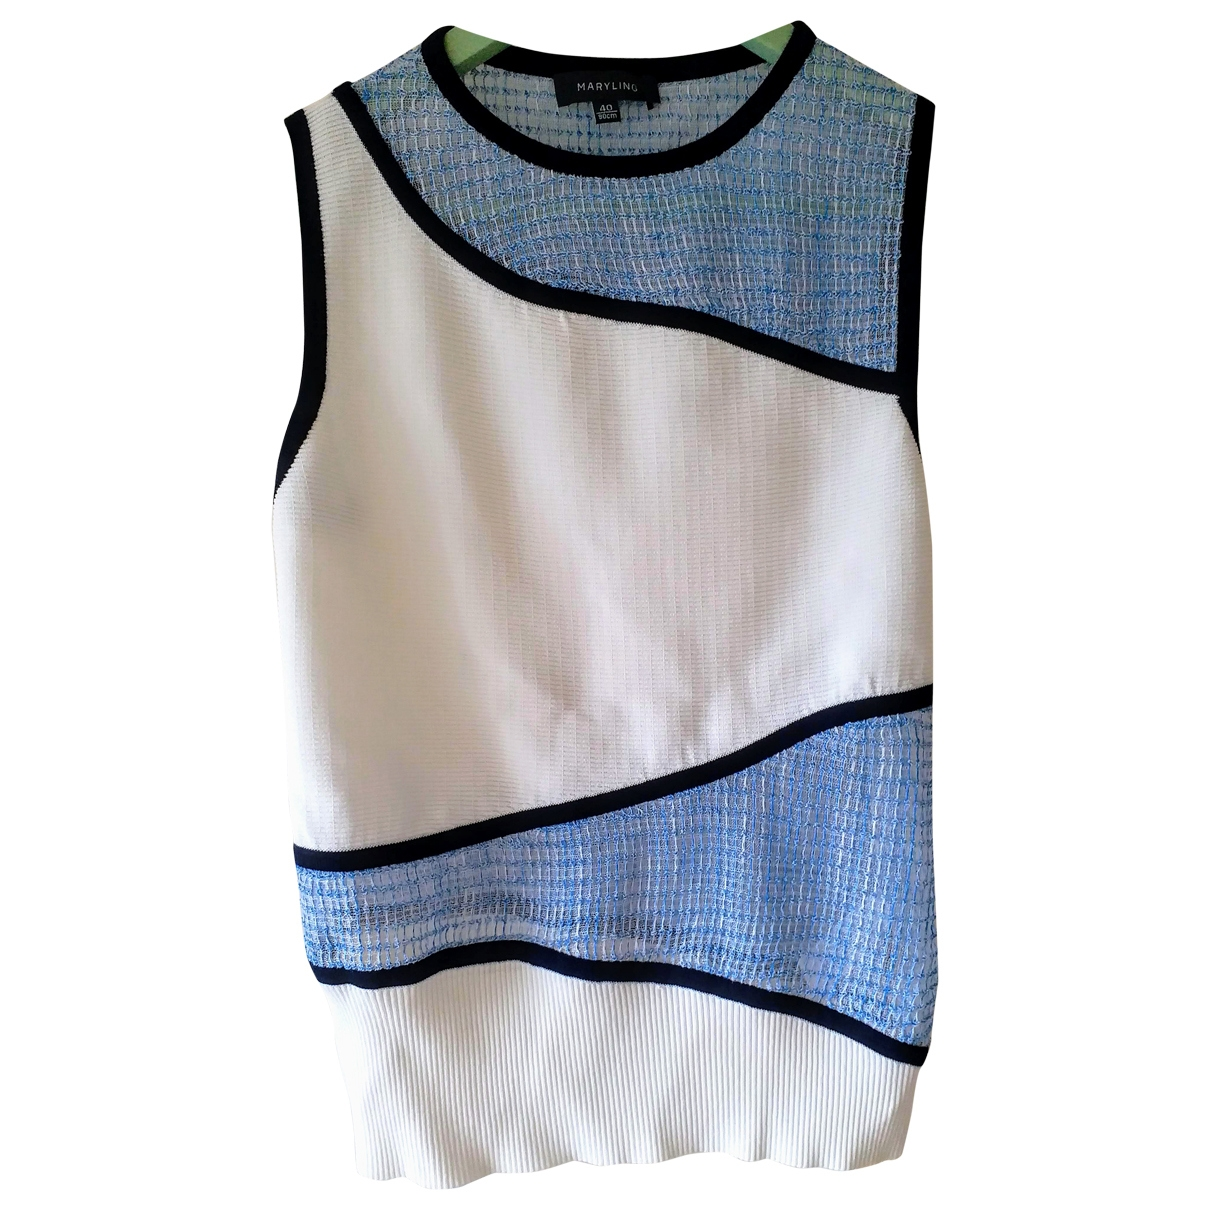 Maryling \N Blue  top for Women 40 IT